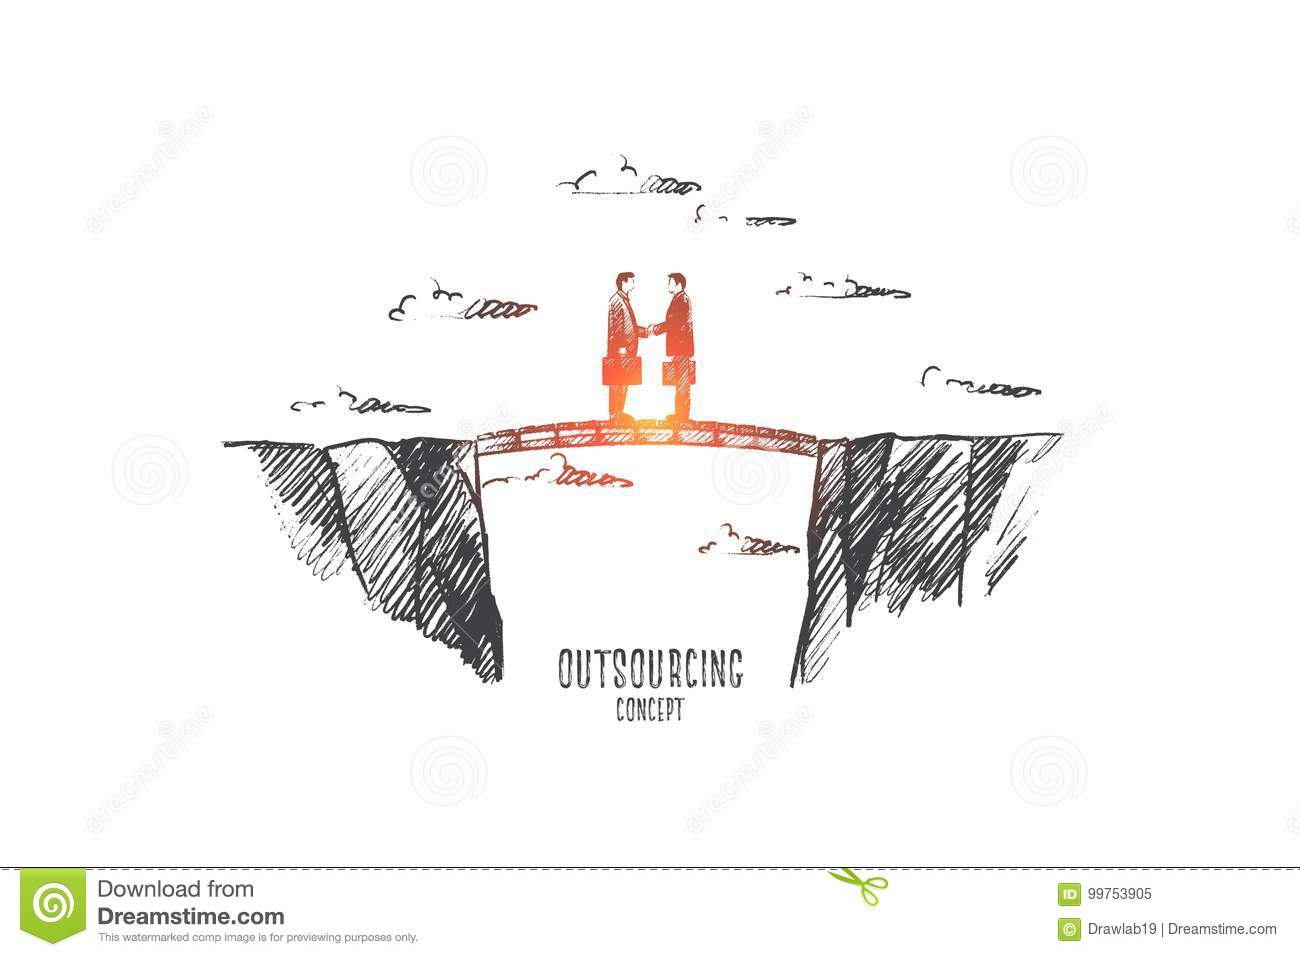 Outsourcing Concept Hand Drawn Isolated Vector Stock